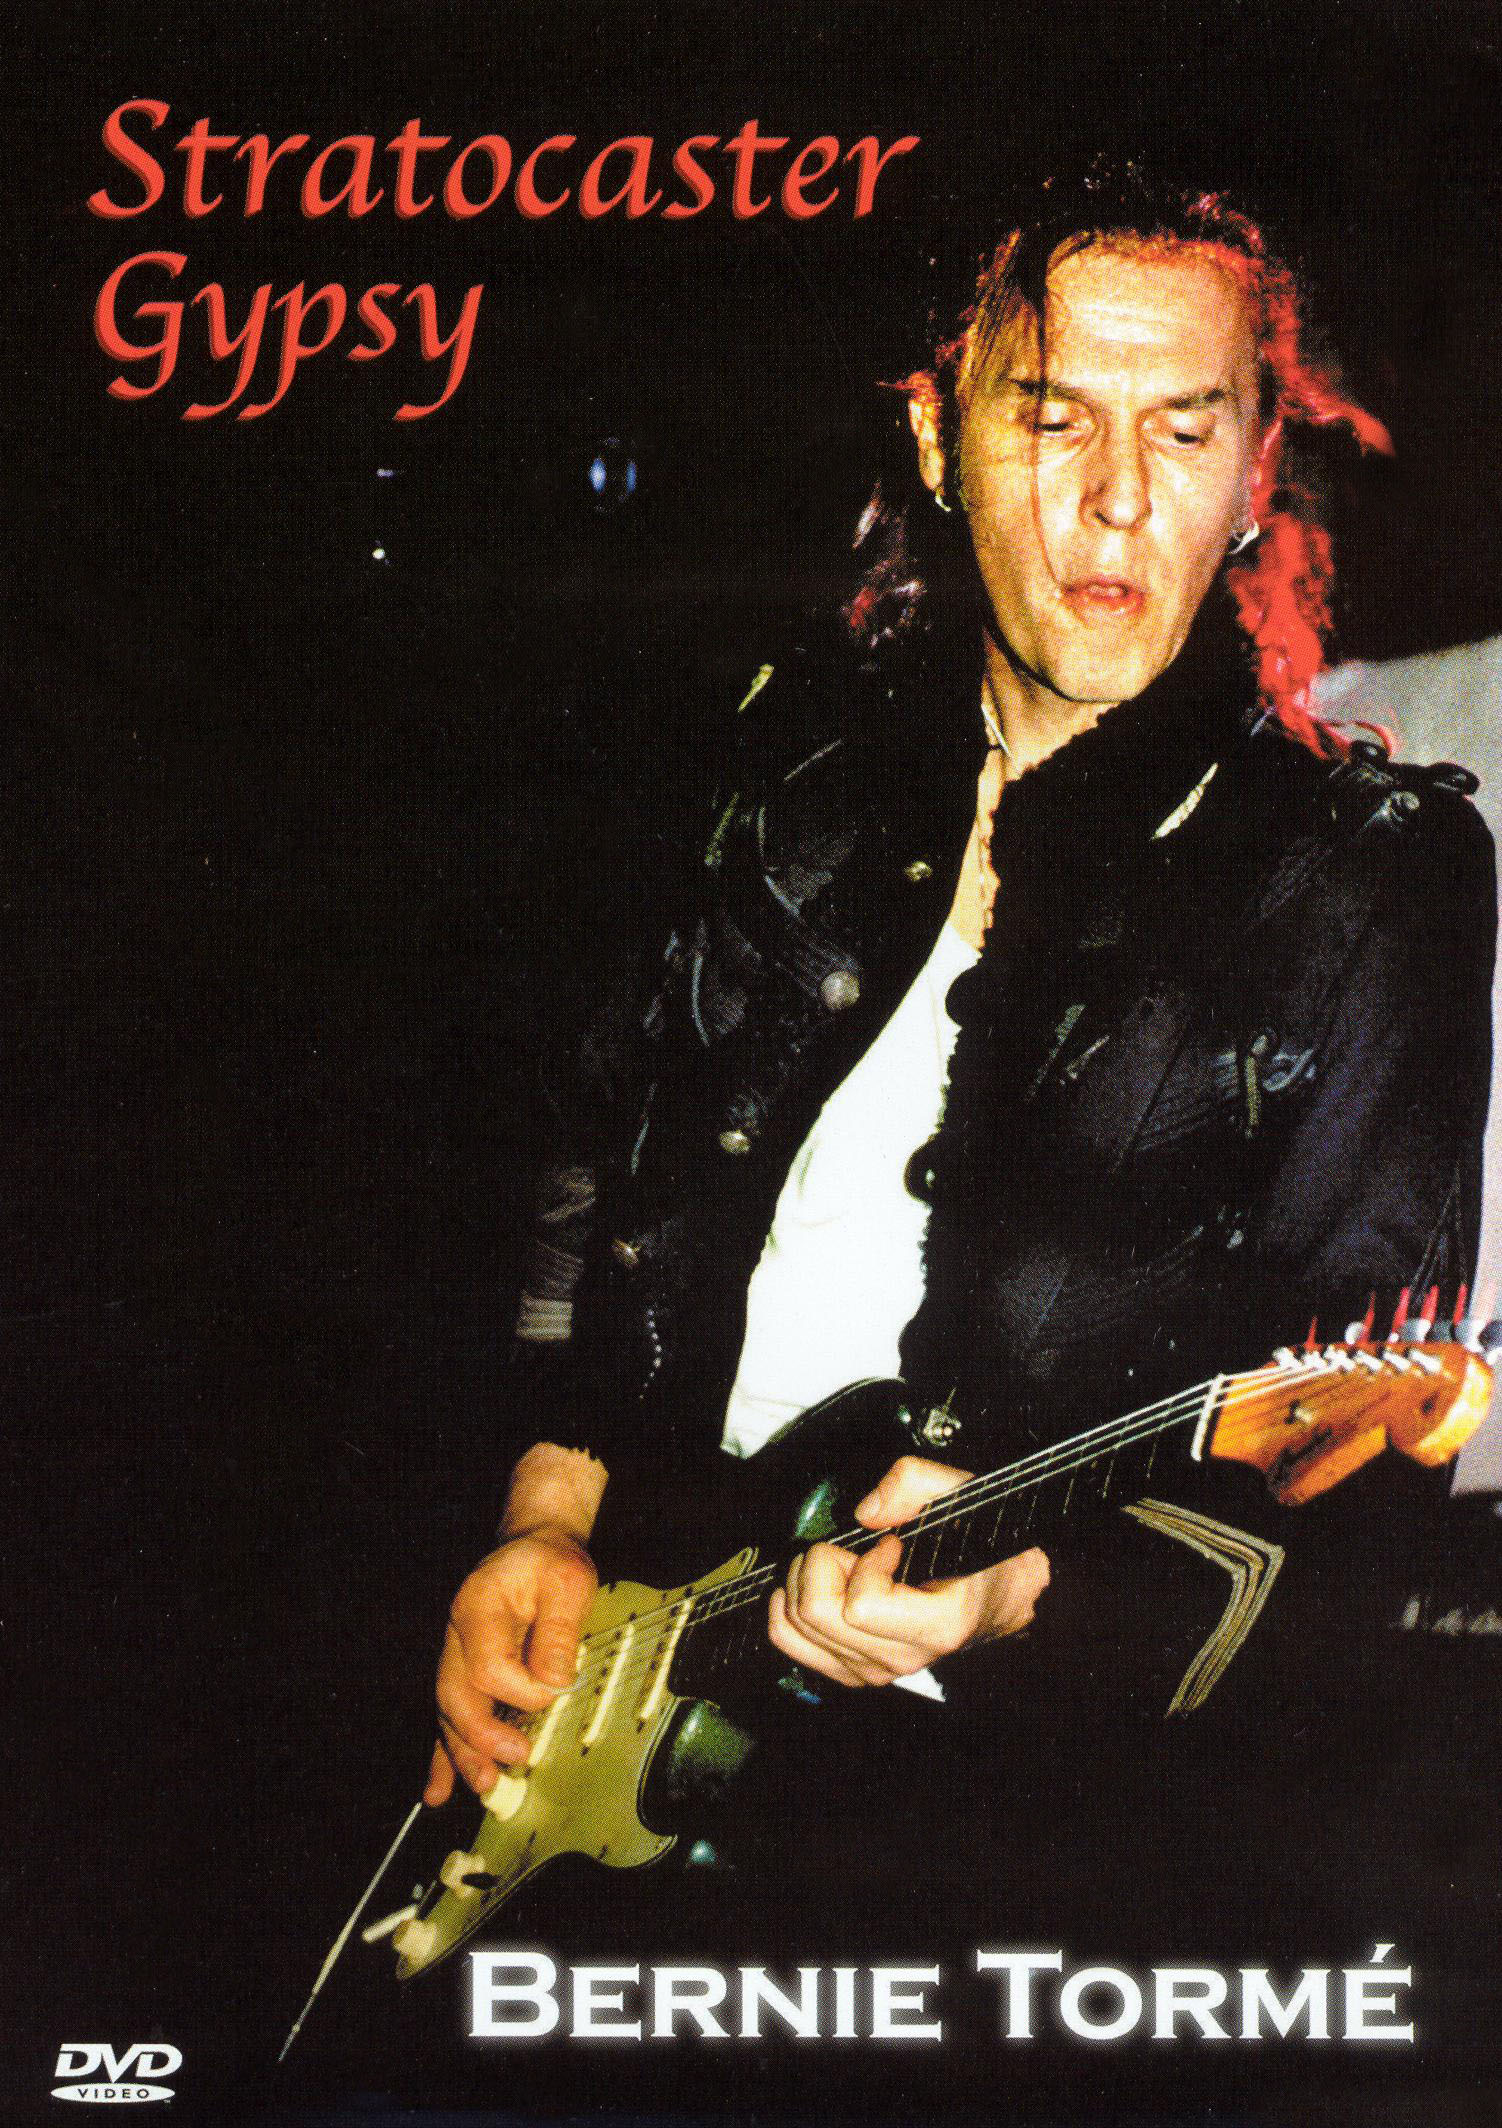 Bernie Torme: Stratocaster Gypsy - From the Early Days of Gillian